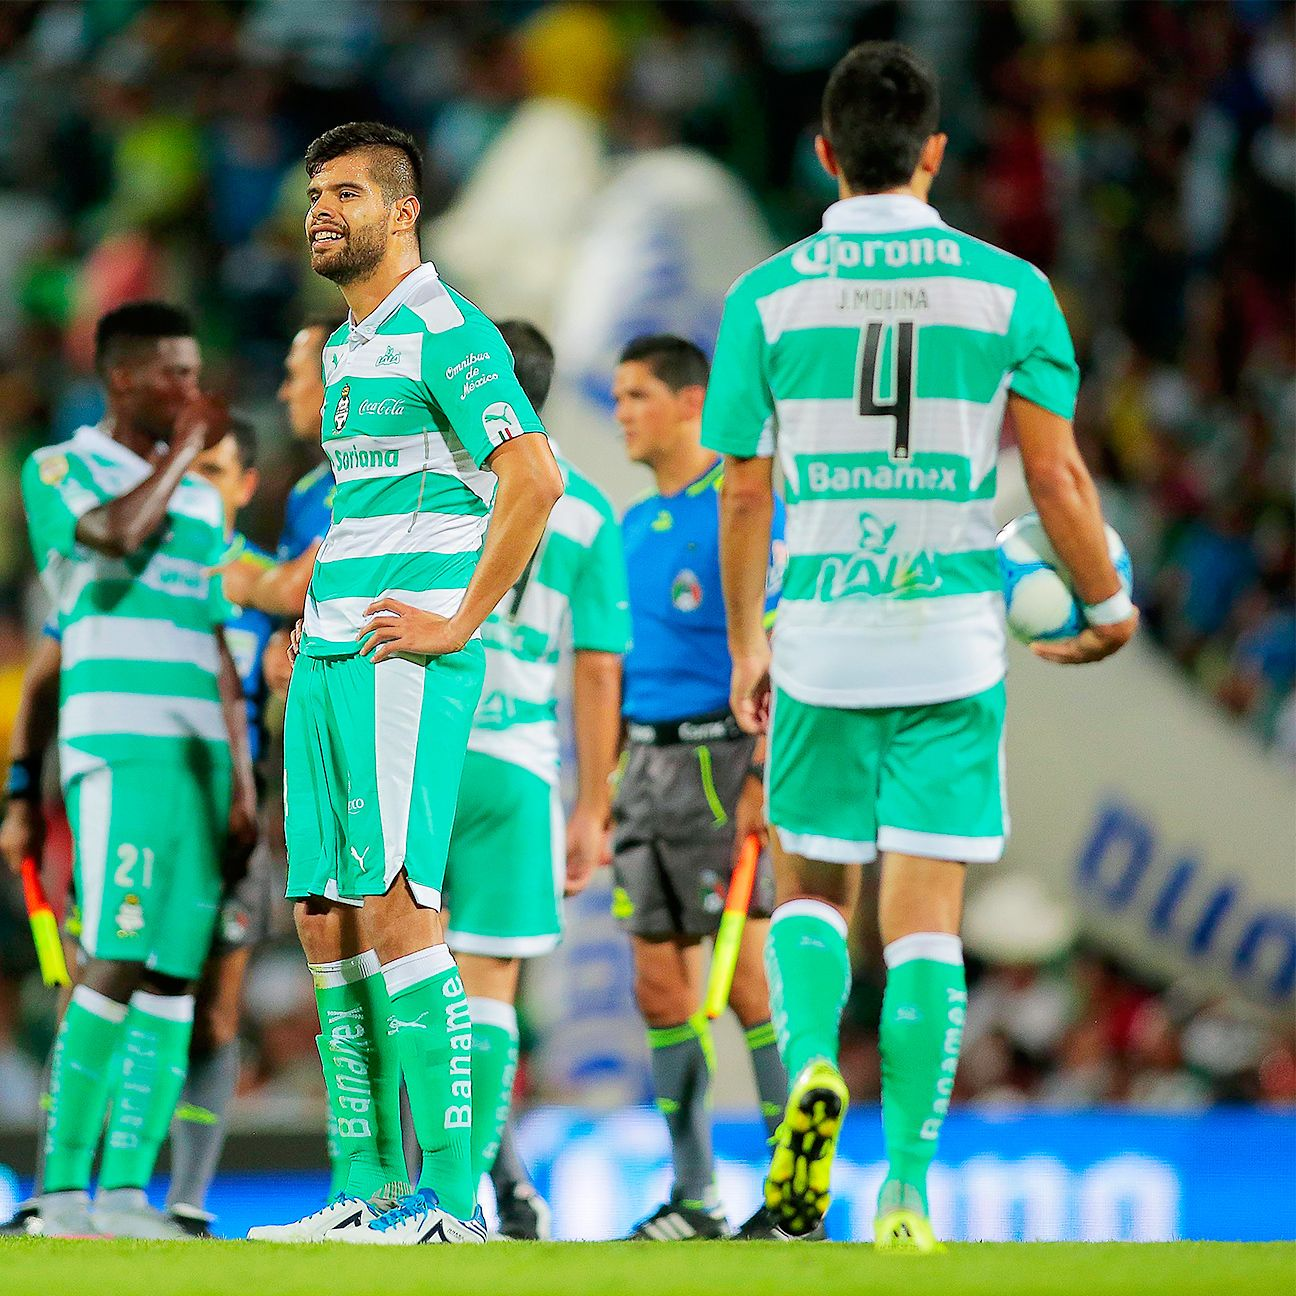 With just three points on the campaign, Clausura champions Santos Laguna need to start winning in order to reach the Apertura postseason.